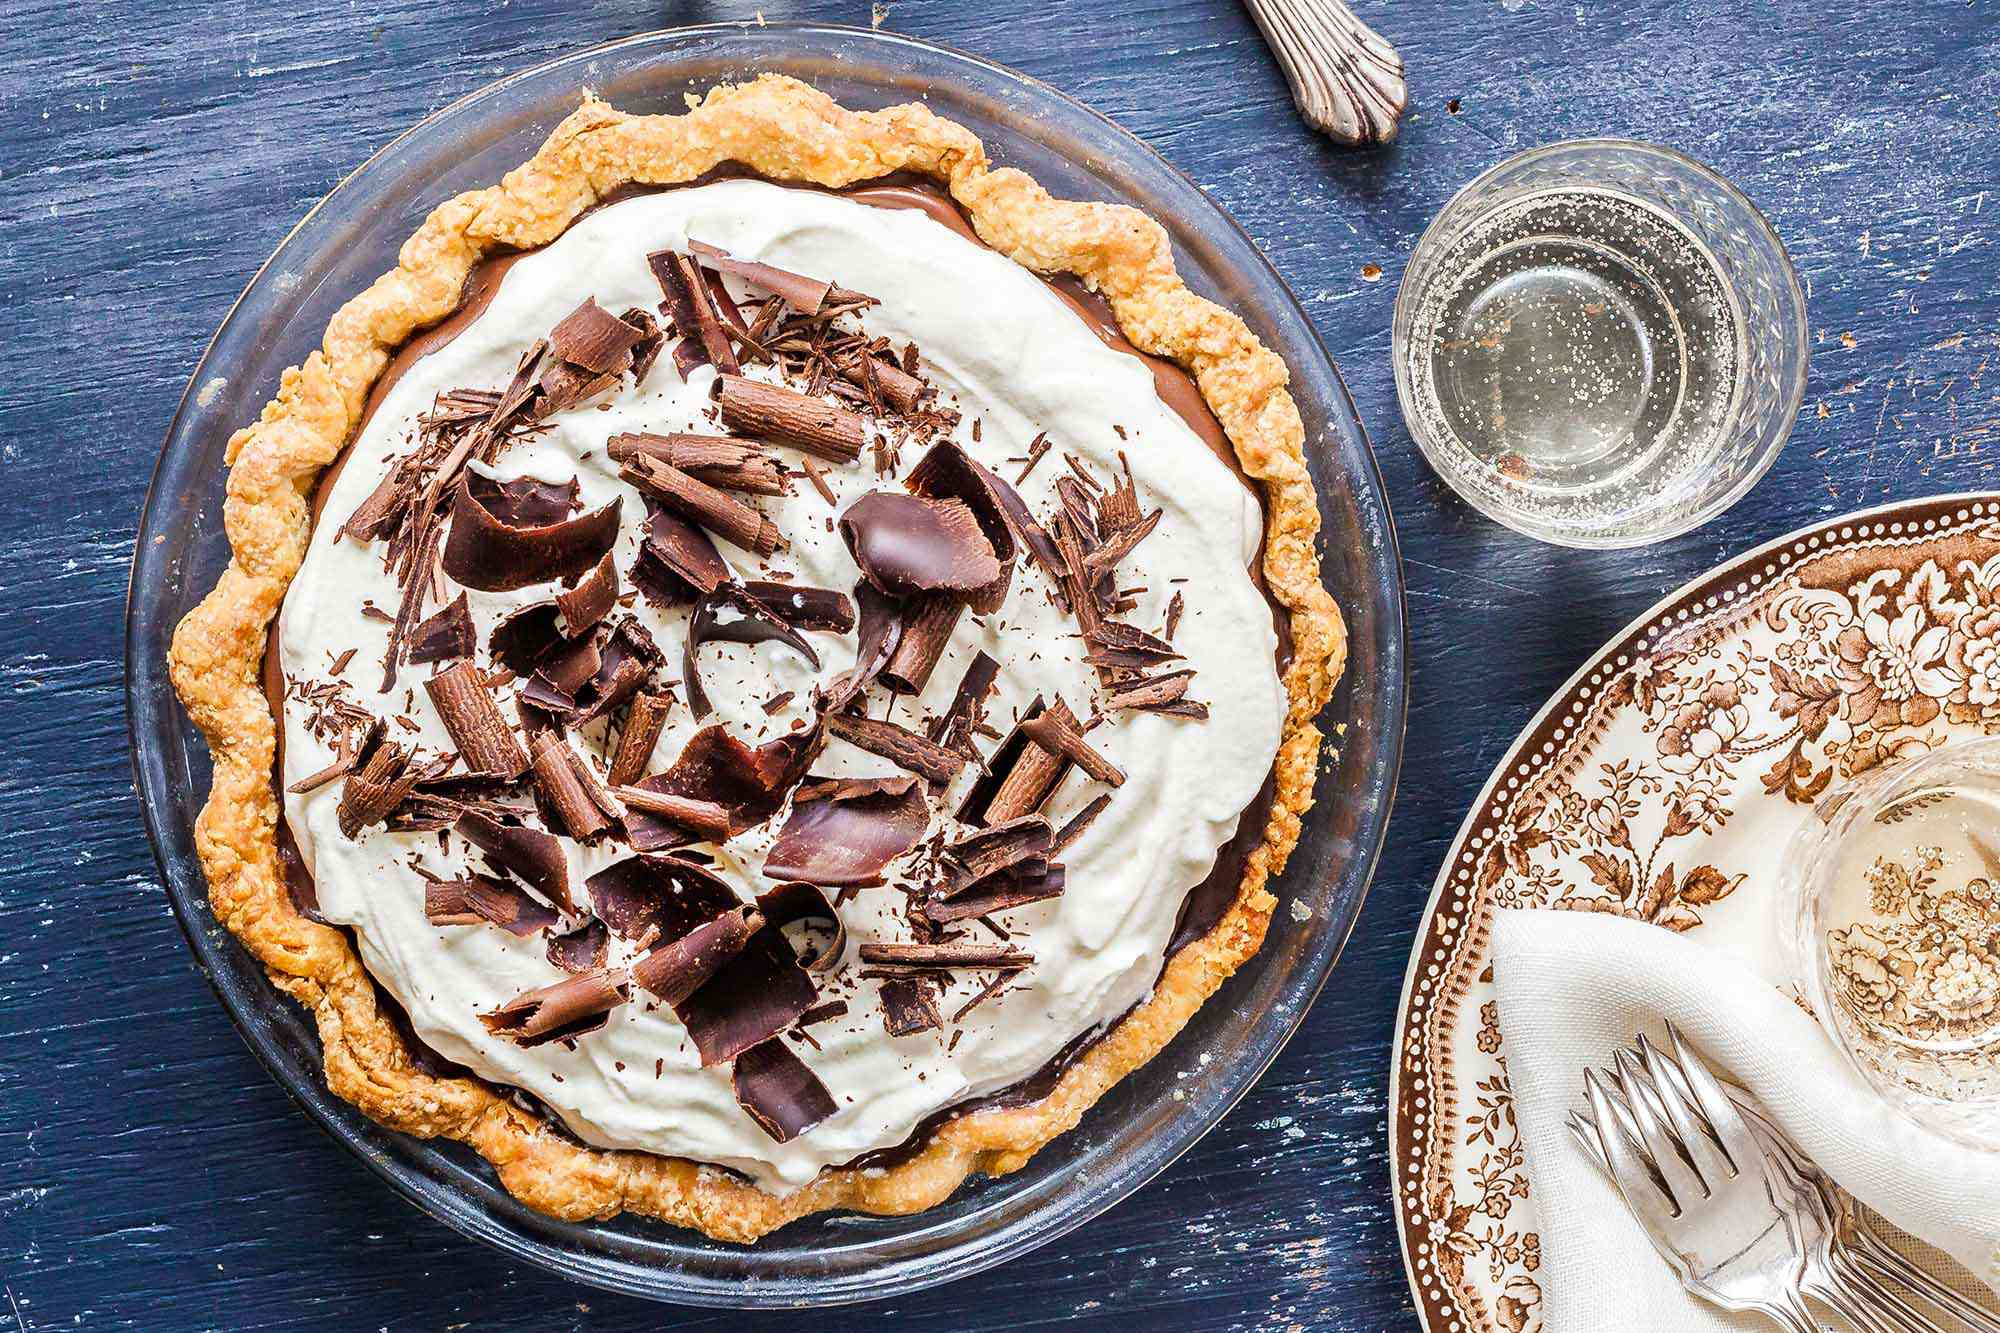 A whole chocolate pie topped with shaved chocolate.